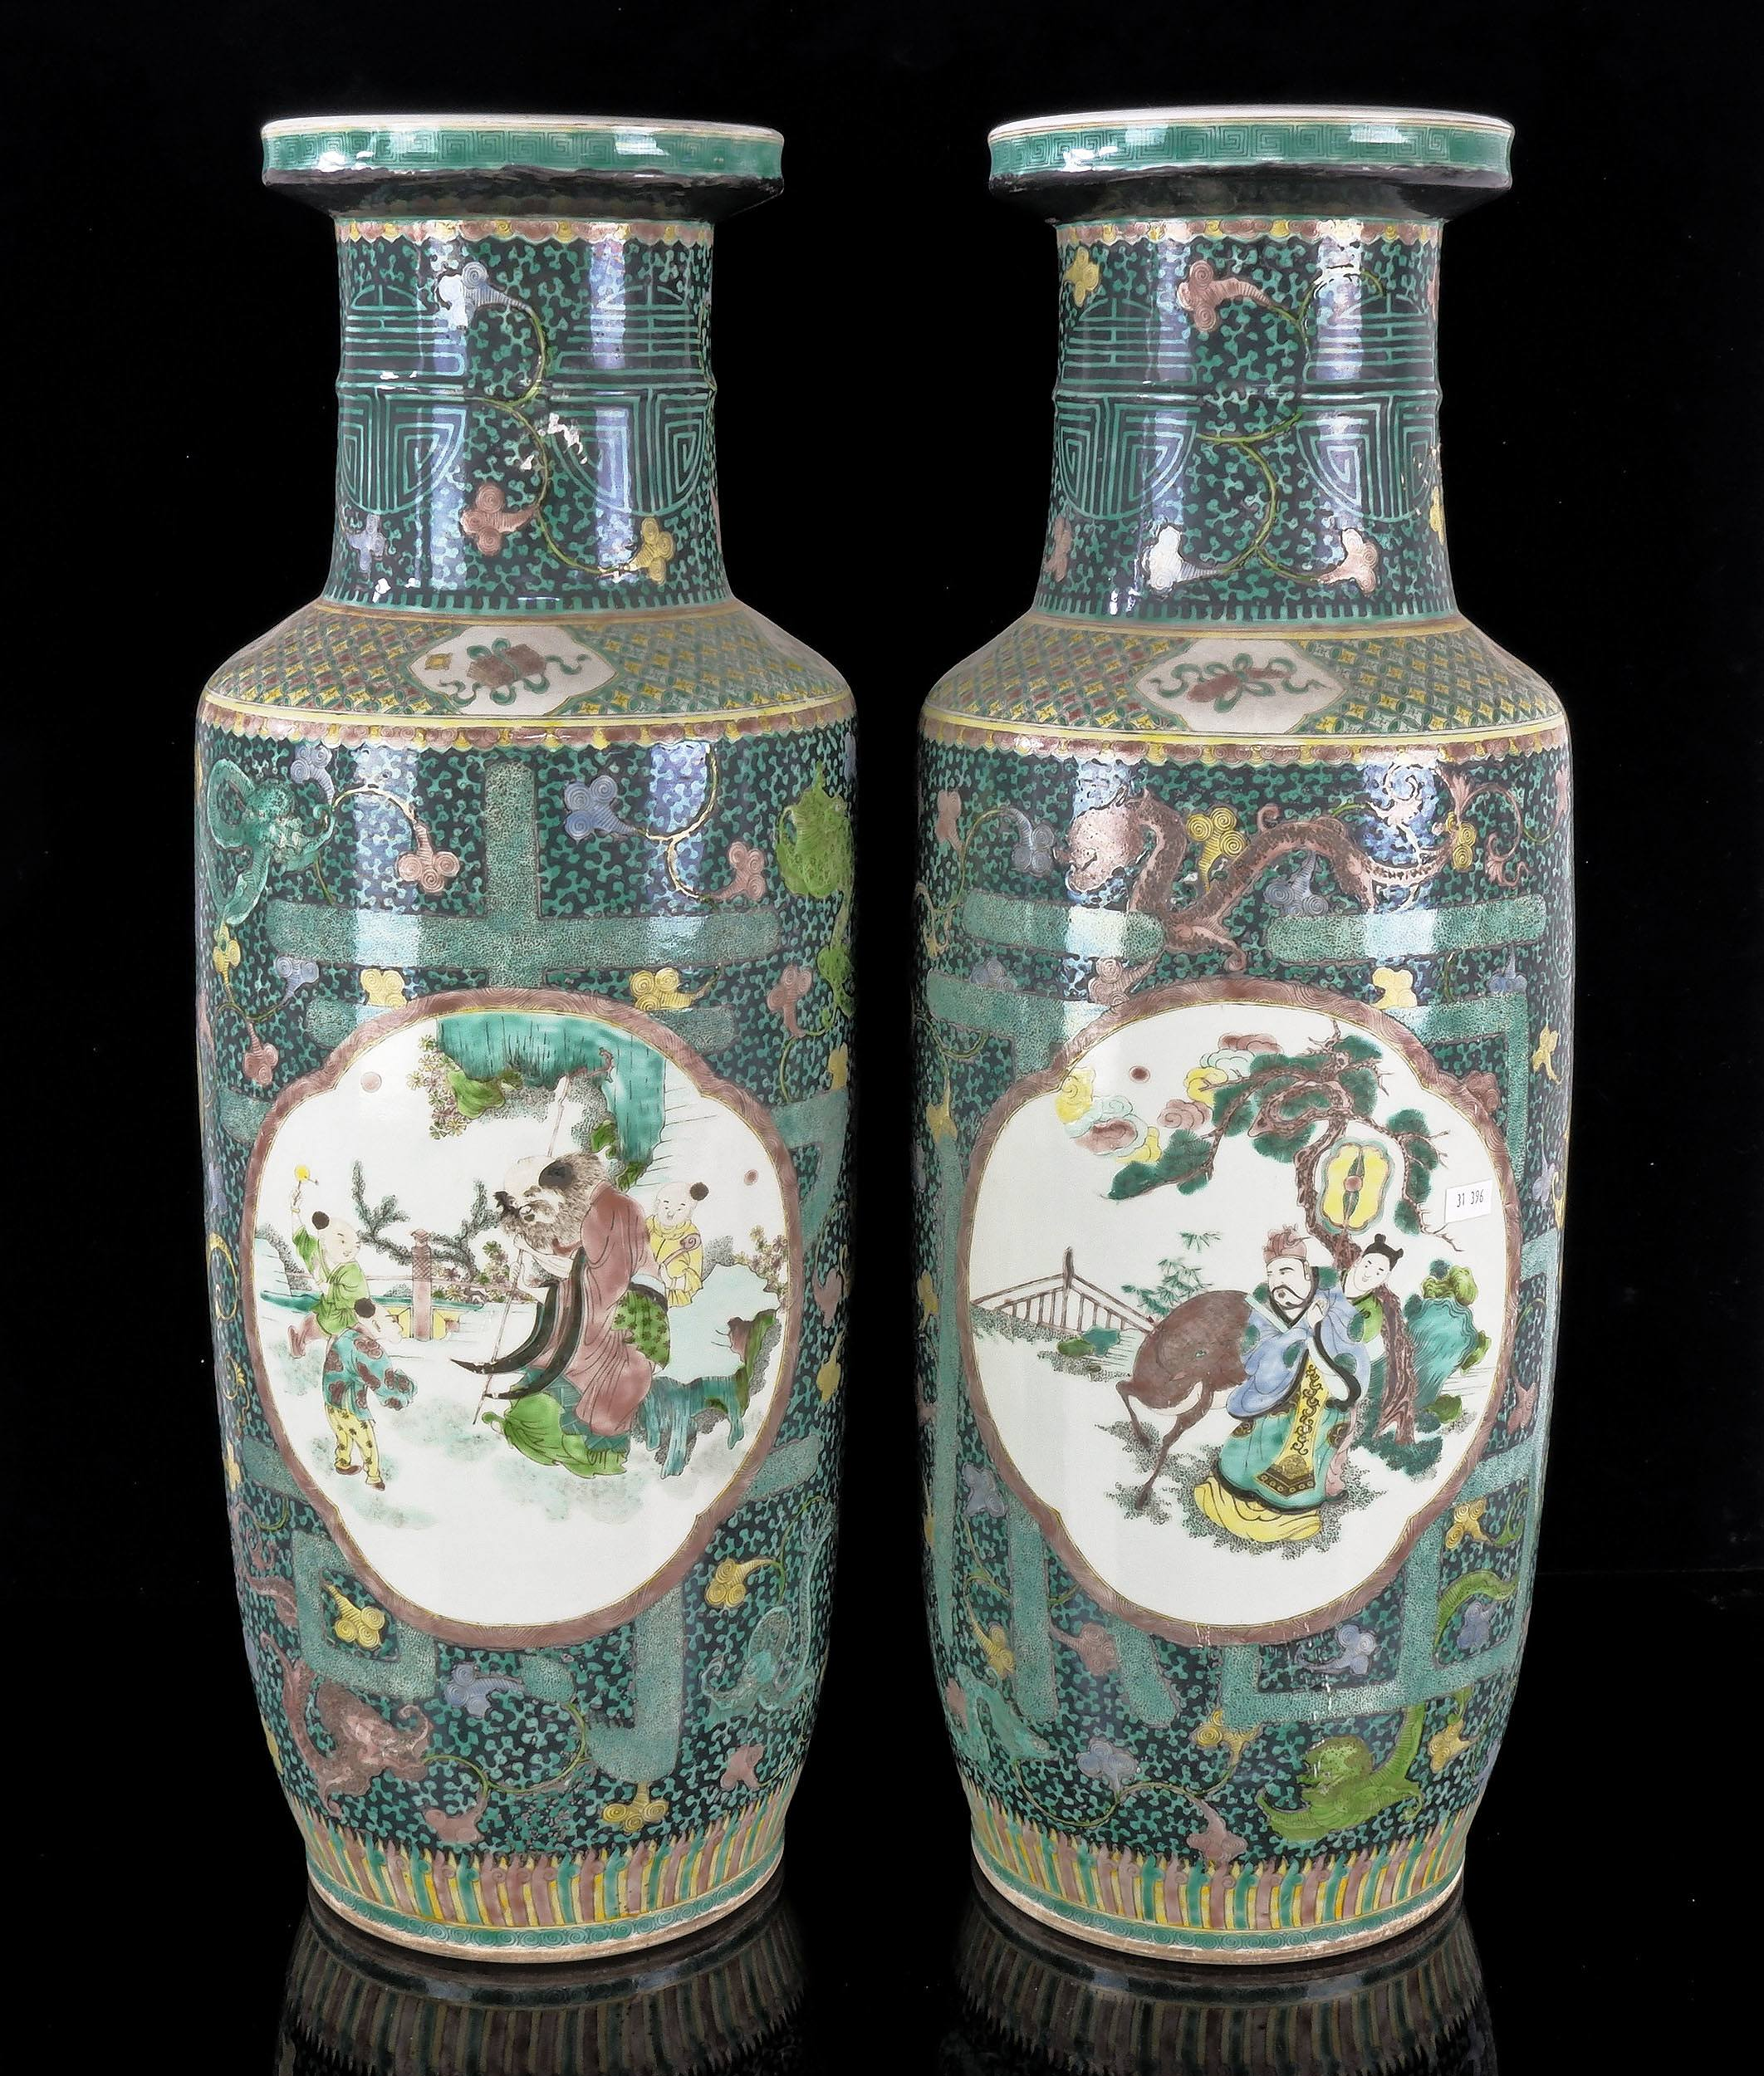 'Very Large Pair of Chinese Famille Verte Vases, Late Qing Dynasty'